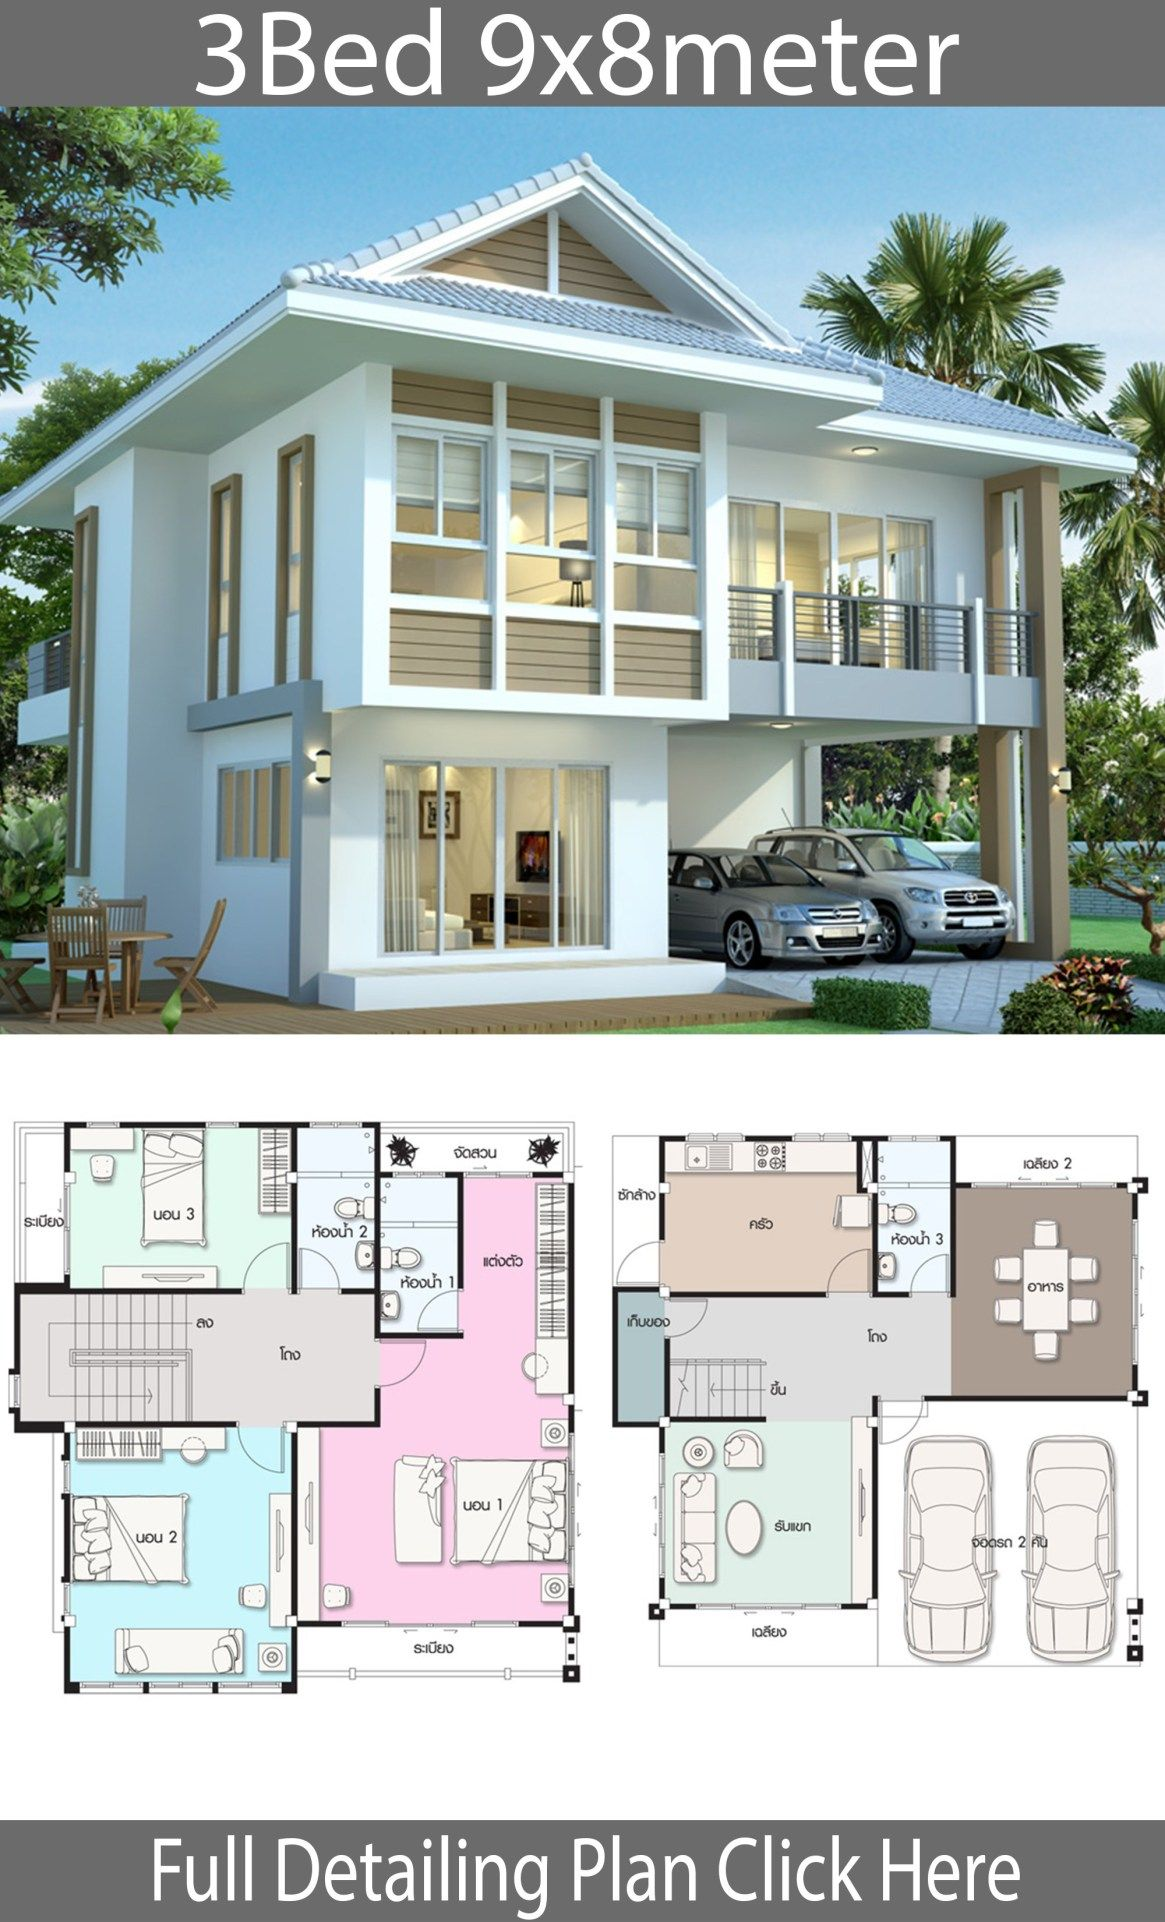 House Design Plan 9x8 With 3 Bedrooms Home Design With Plansearch Sims House Plans Sims 4 House Plans House Blueprints